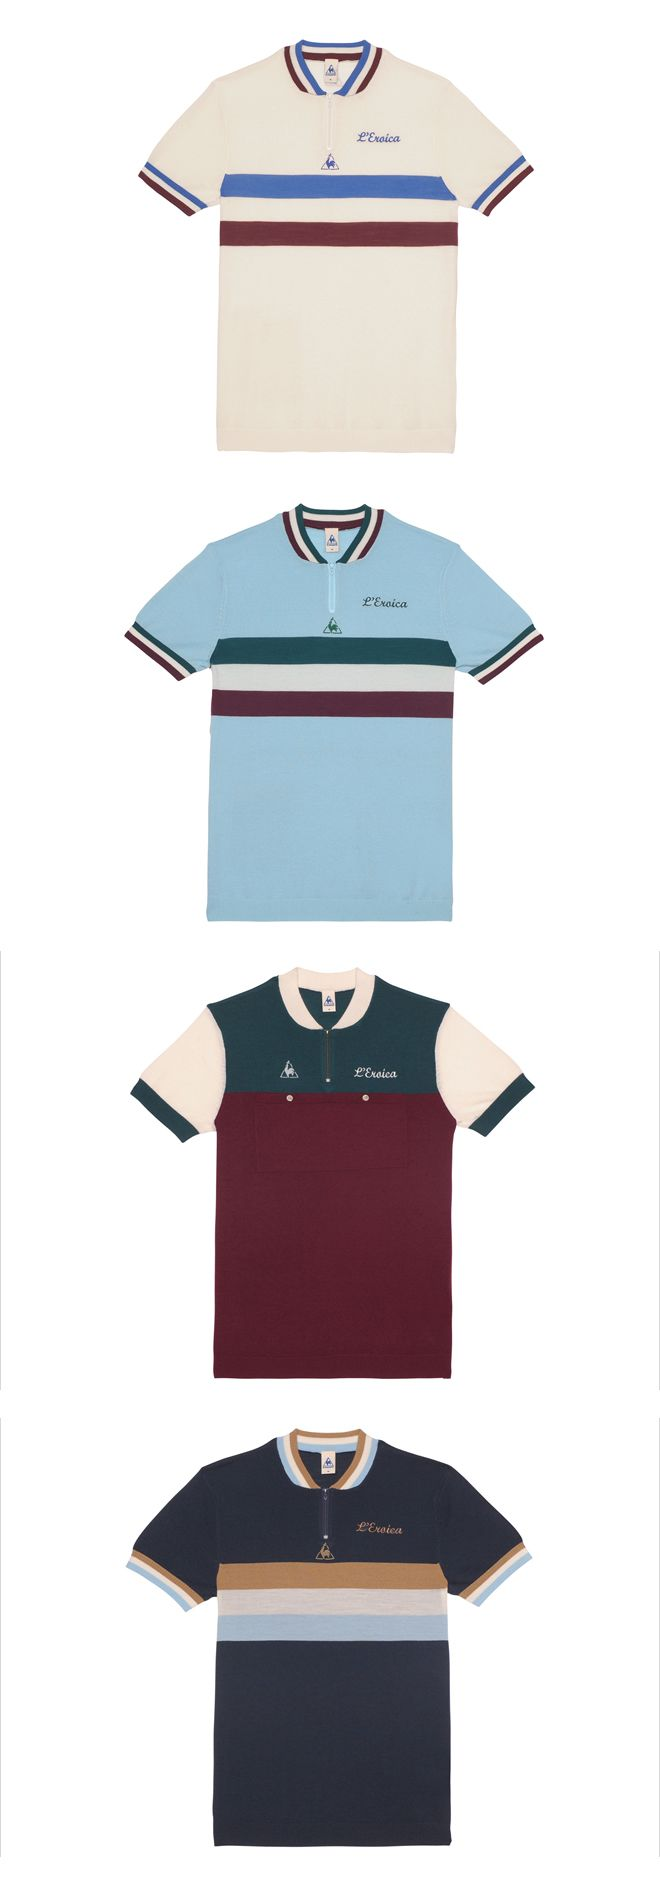 L'EROICA CYCLING RANGE from le coq sportif --- Taking notice of the use of multiple colours, and various layout designs.